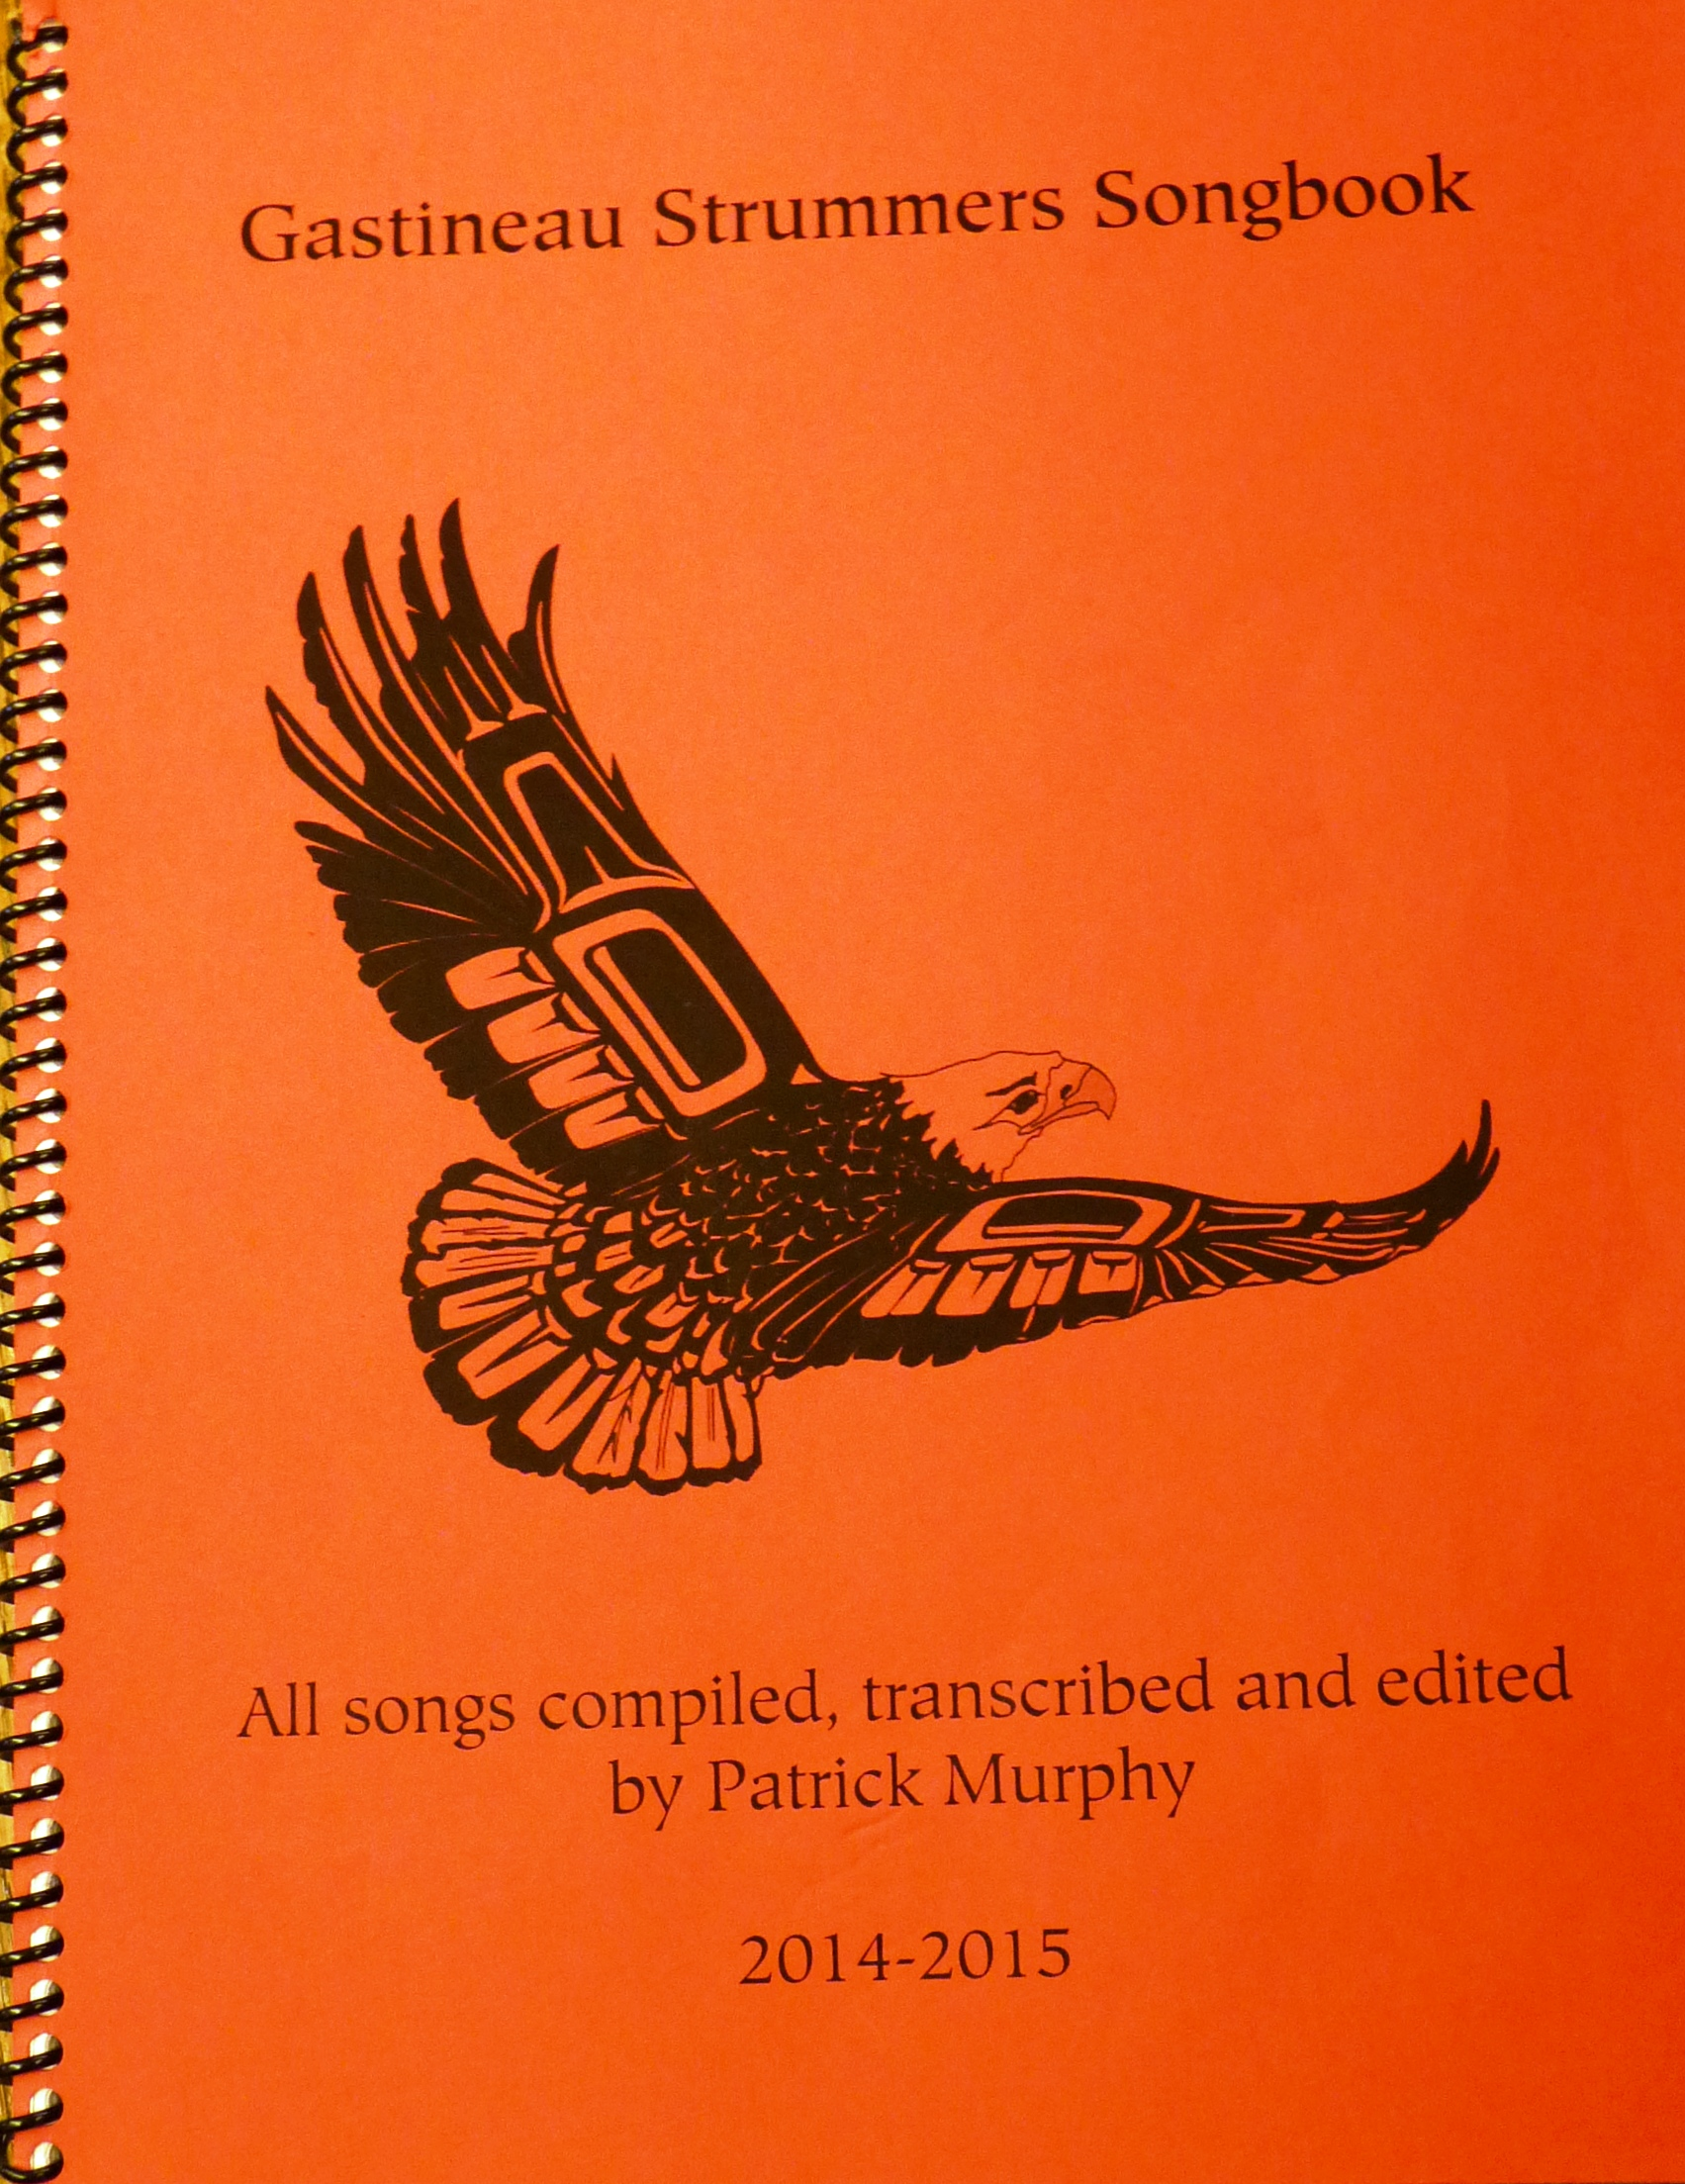 The songbook assembled by Gastineau Elementary School teacher Patrick Murphy. (Photo by Ed Schoenfeld, CoastAlaska News)